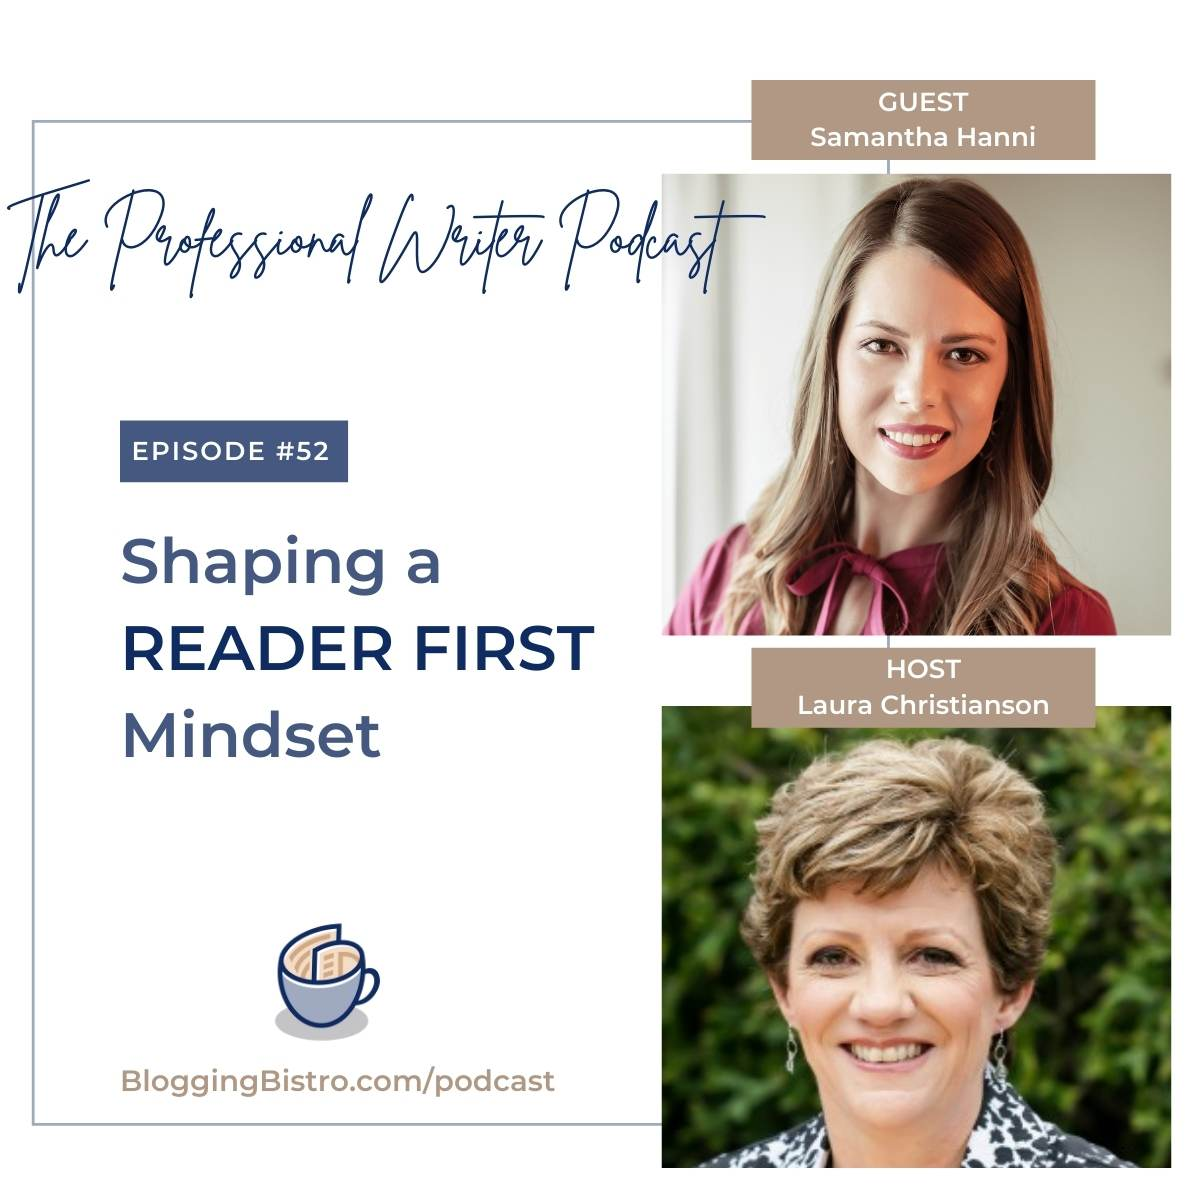 52 – Shaping a 'Reader First' Mindset, With Samantha Hanni